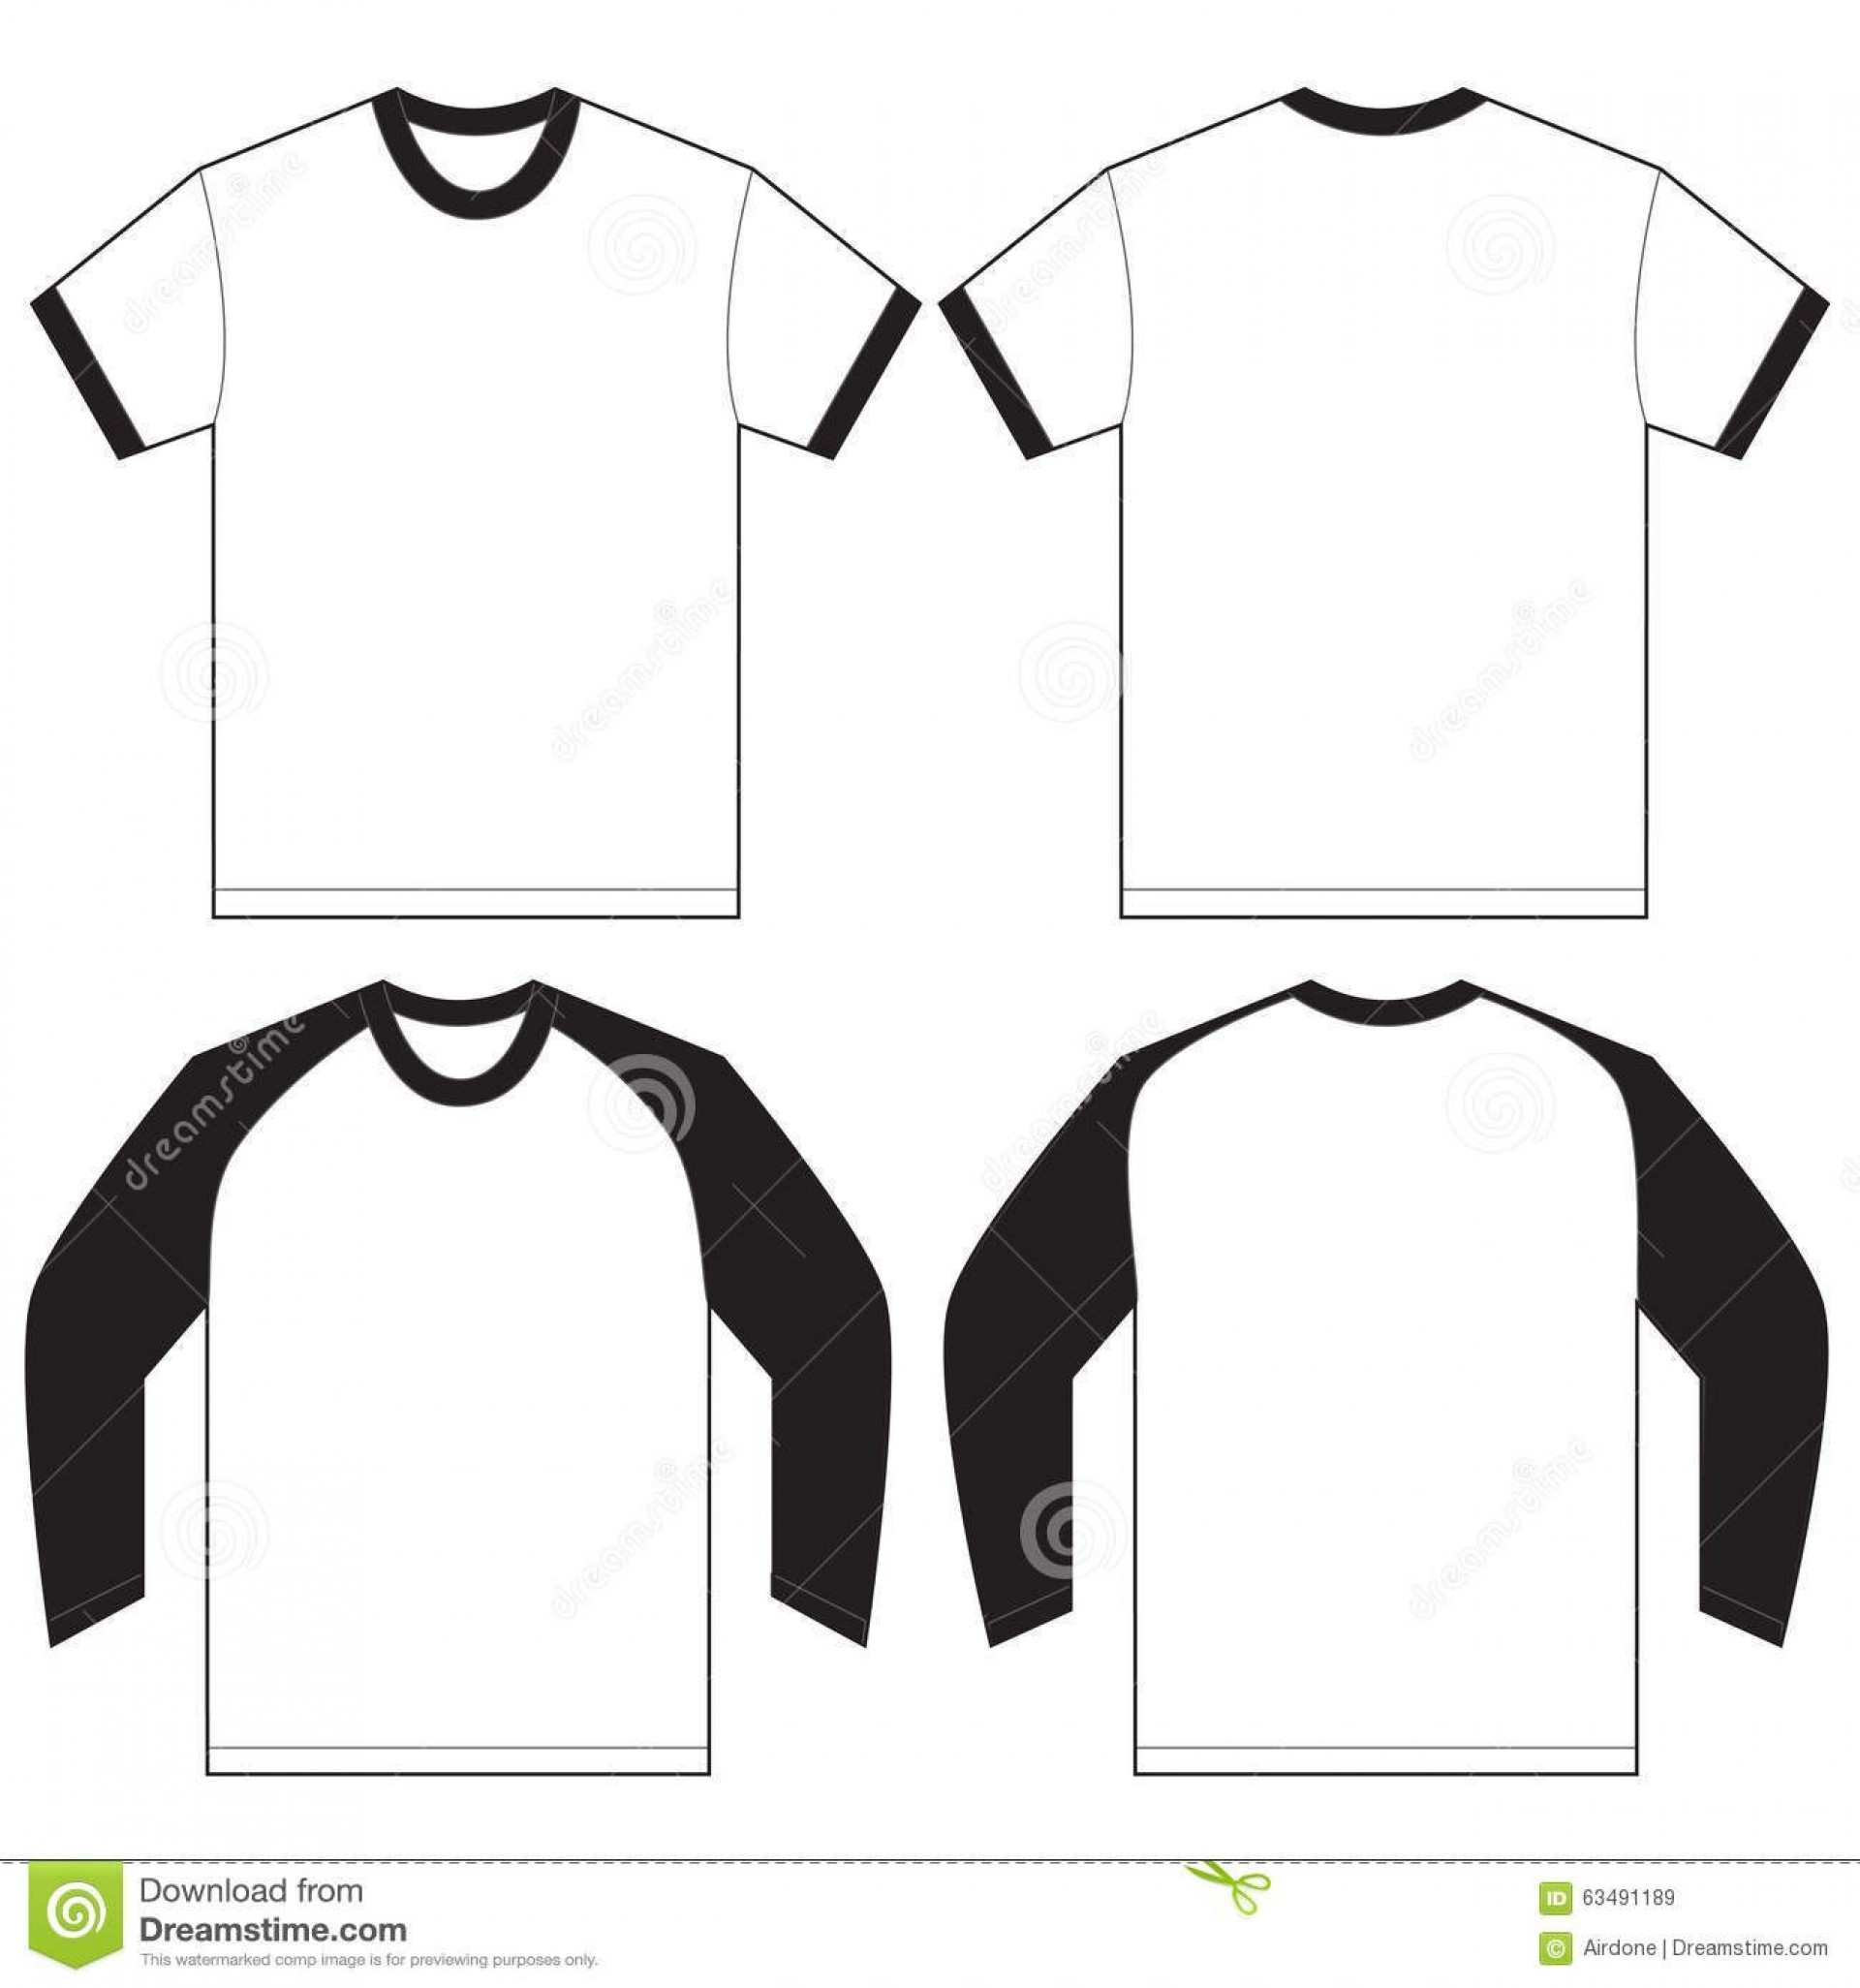 008 Stupendou T Shirt Template Design Picture  Psd Free Download Editable1920